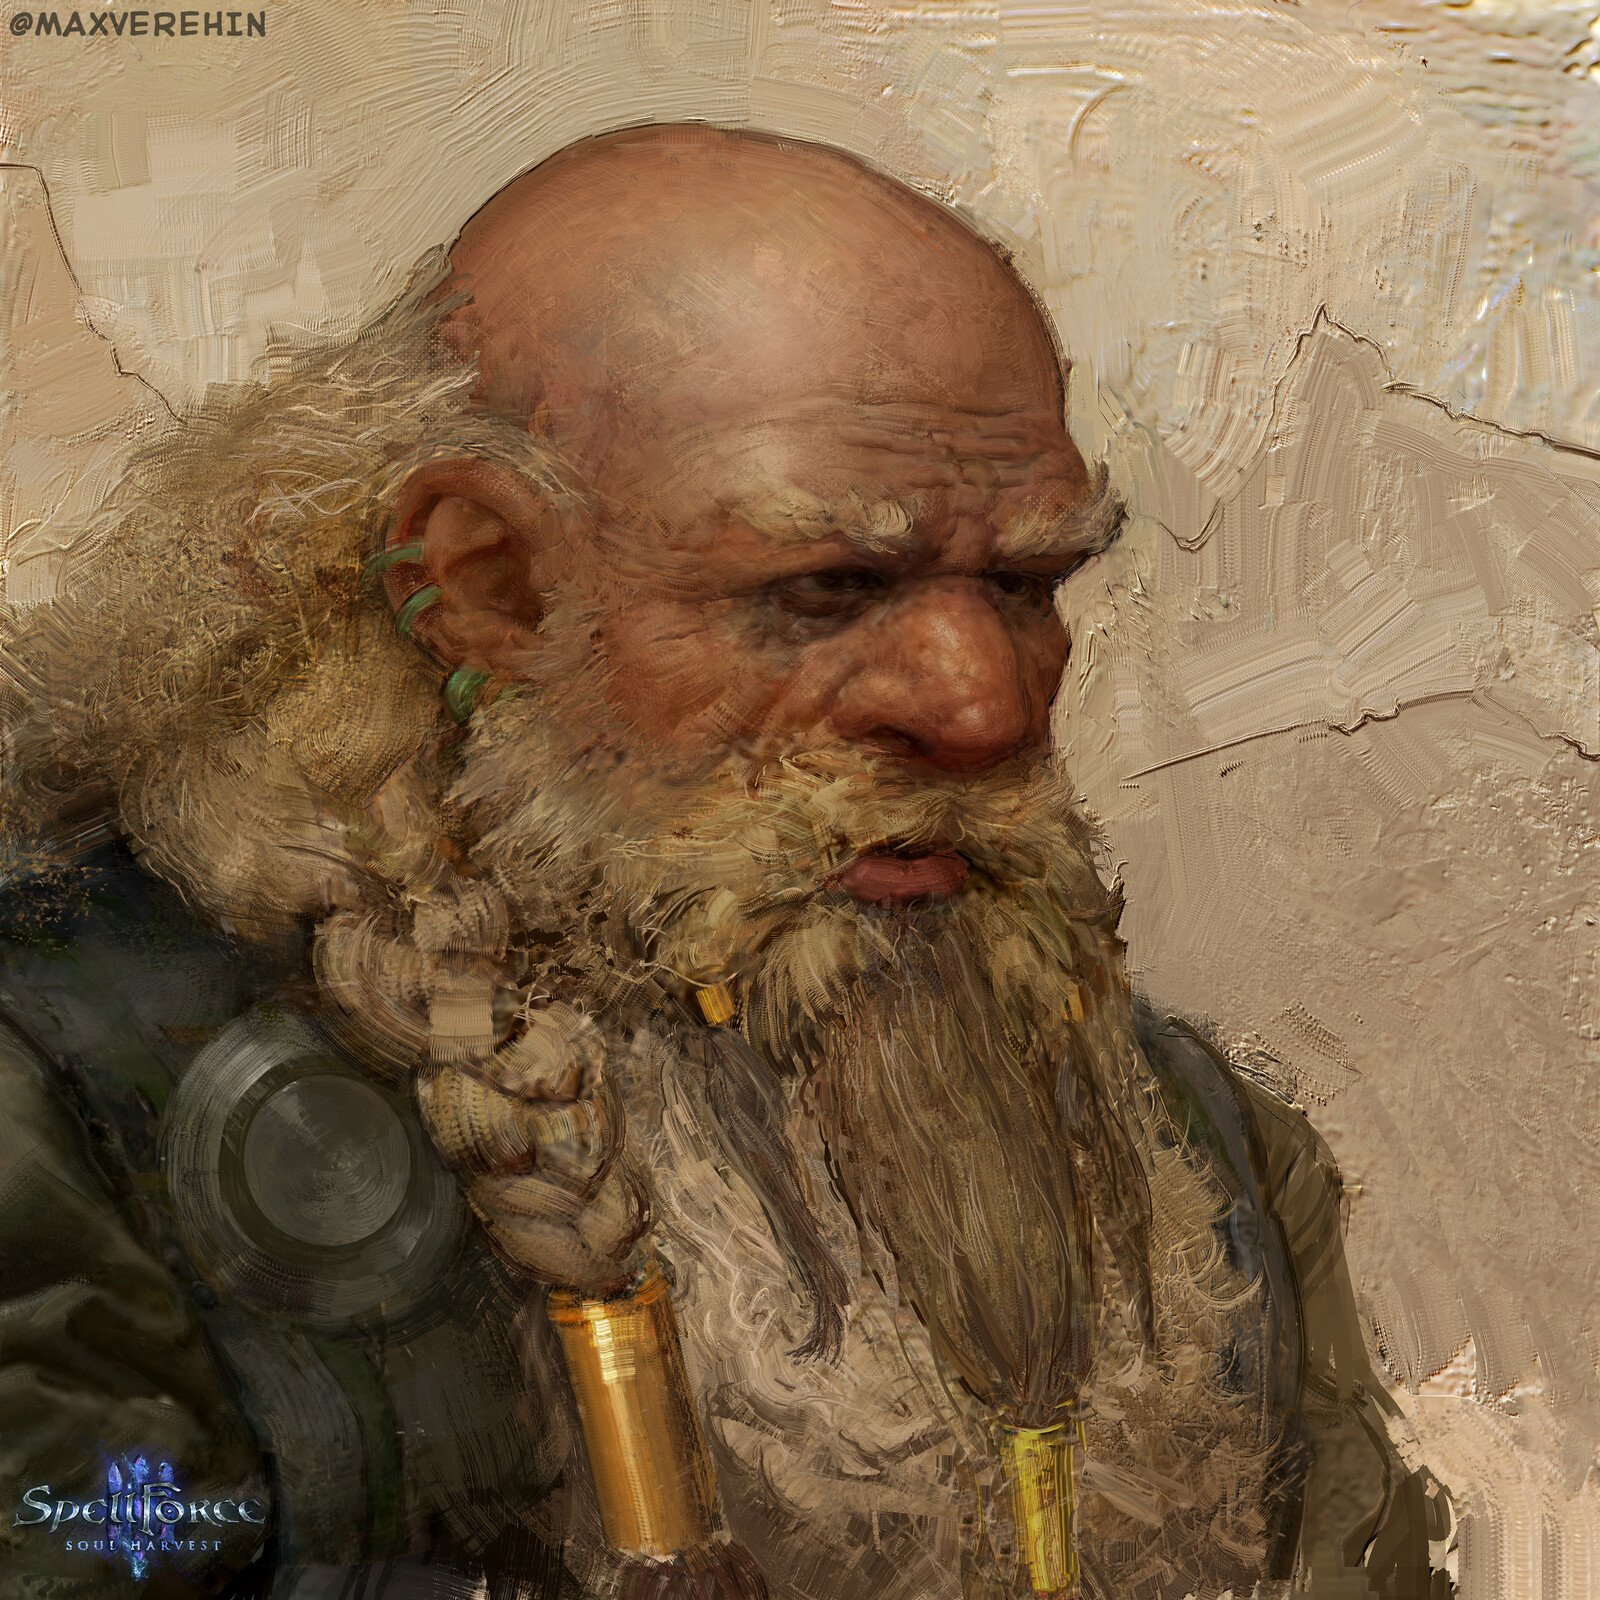 SpellForce 3 dwarfs portraits